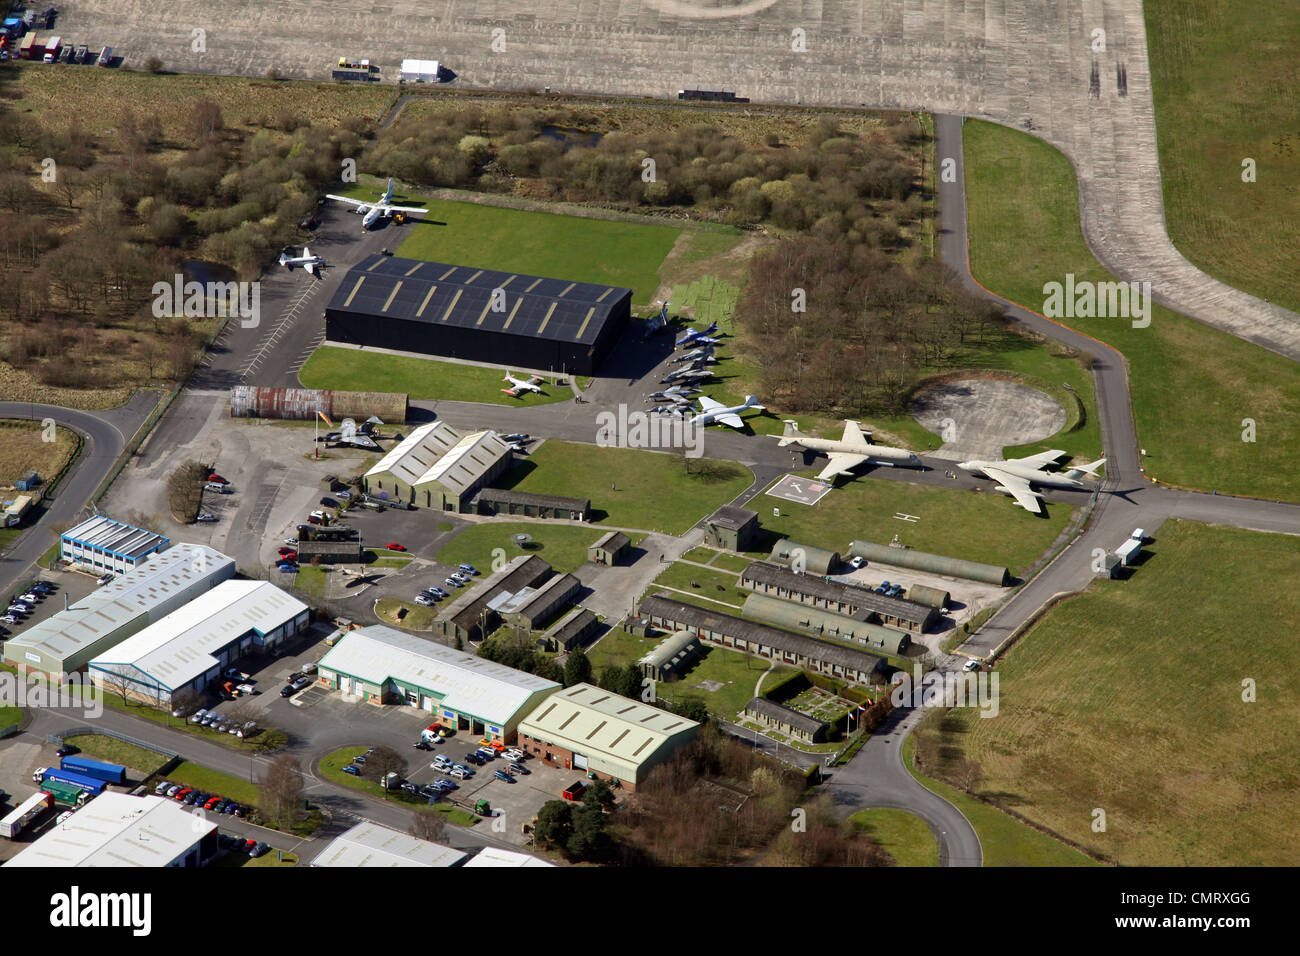 aerial view of Yorkshire Air Museum at Elvington Airfield - Stock Image